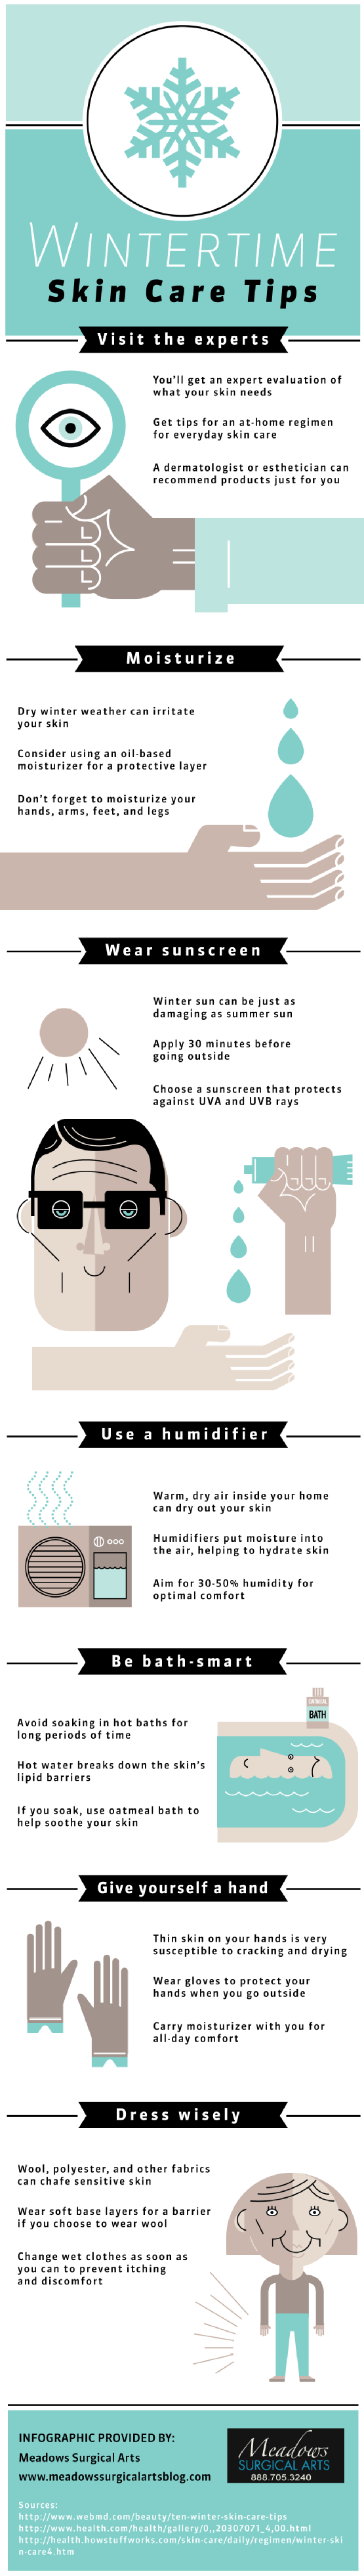 Infographic: Wintertime Skin Care Tips